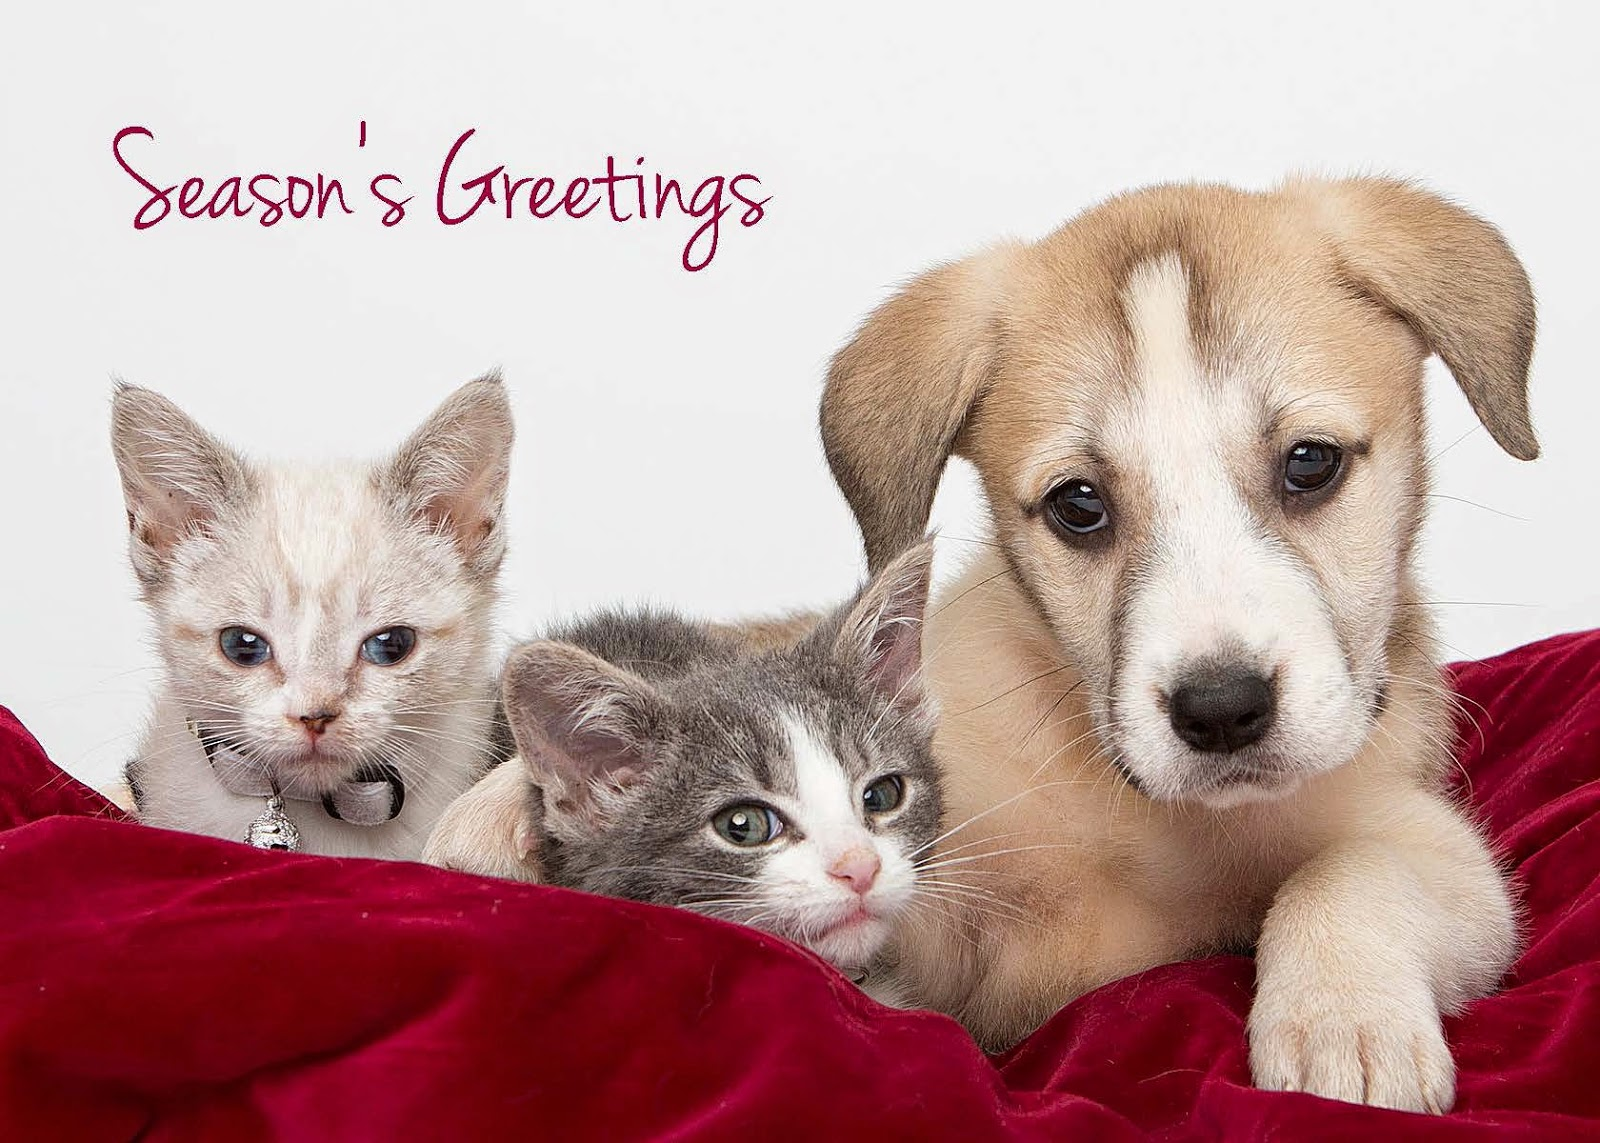 Cat chat with caren and cody help make homeless animals wishes cards from michigan humane to send my wishes for a warm holiday and now they have become part of my holiday routine in fact i am ordering some for m4hsunfo